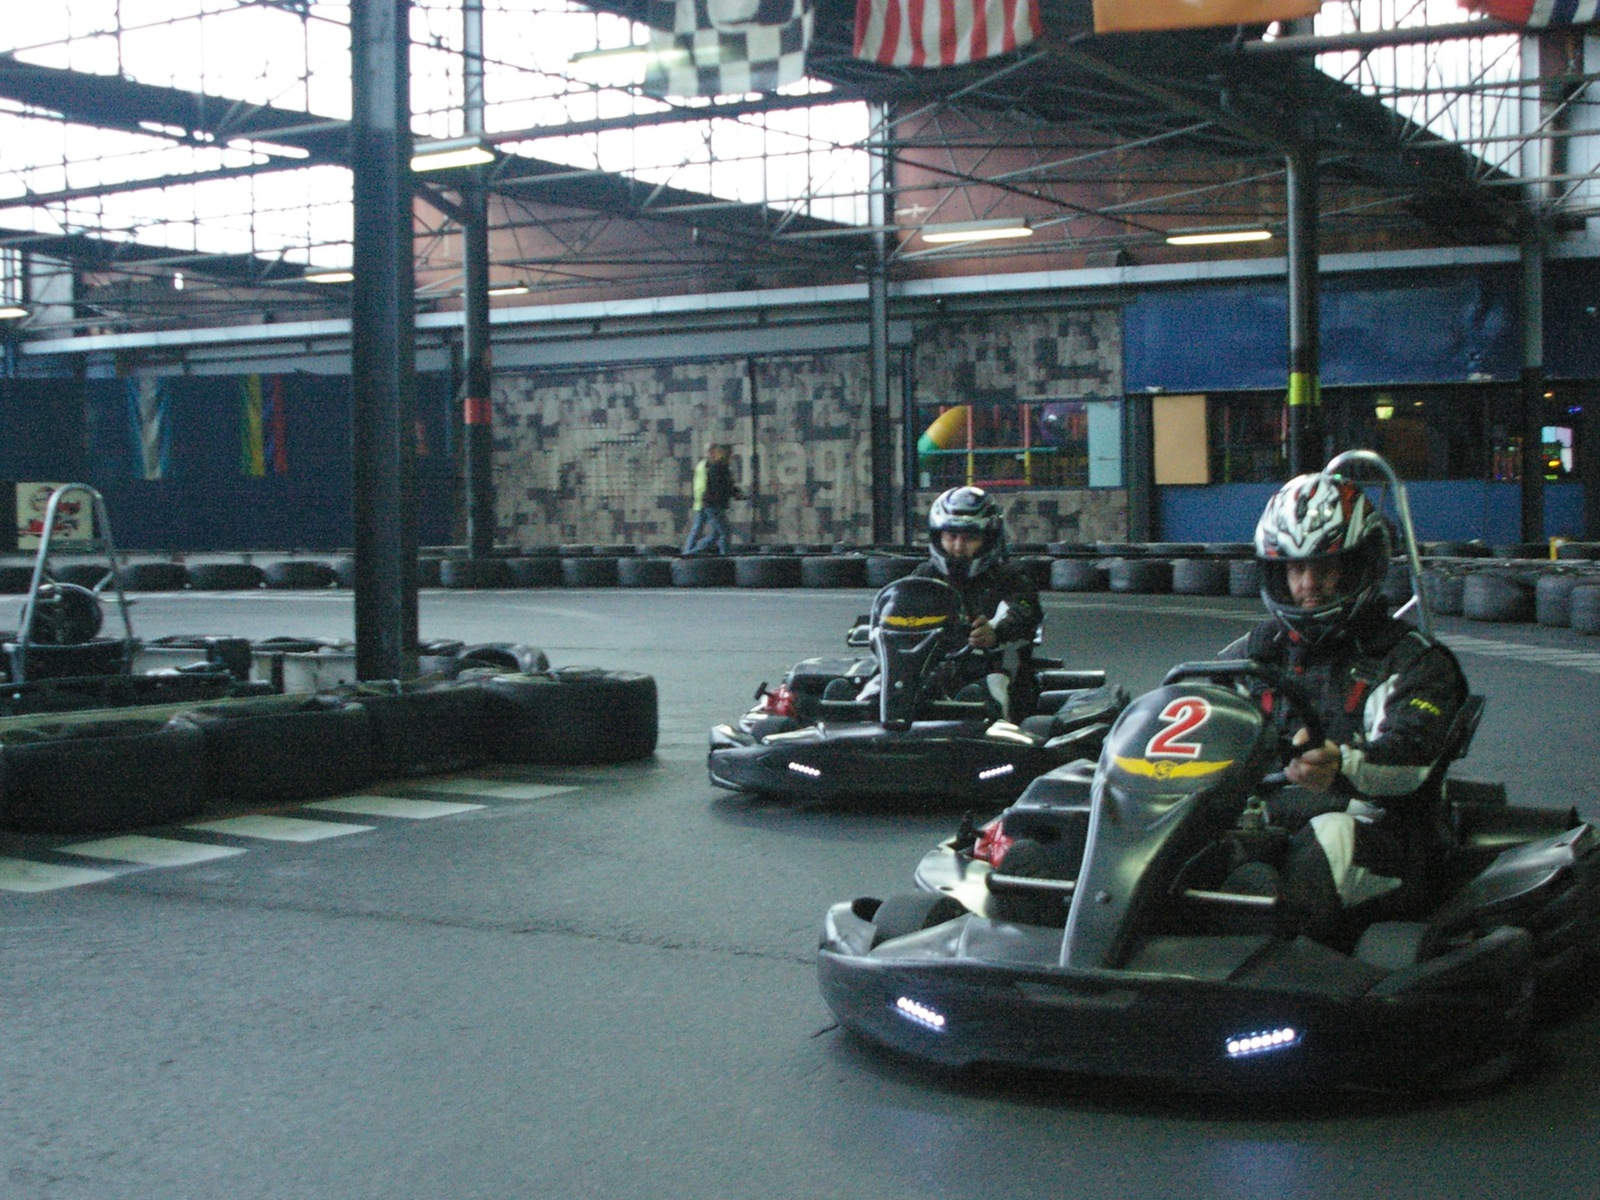 Go Kart Racing indoors, Huge indoor racetrack built for groups and families